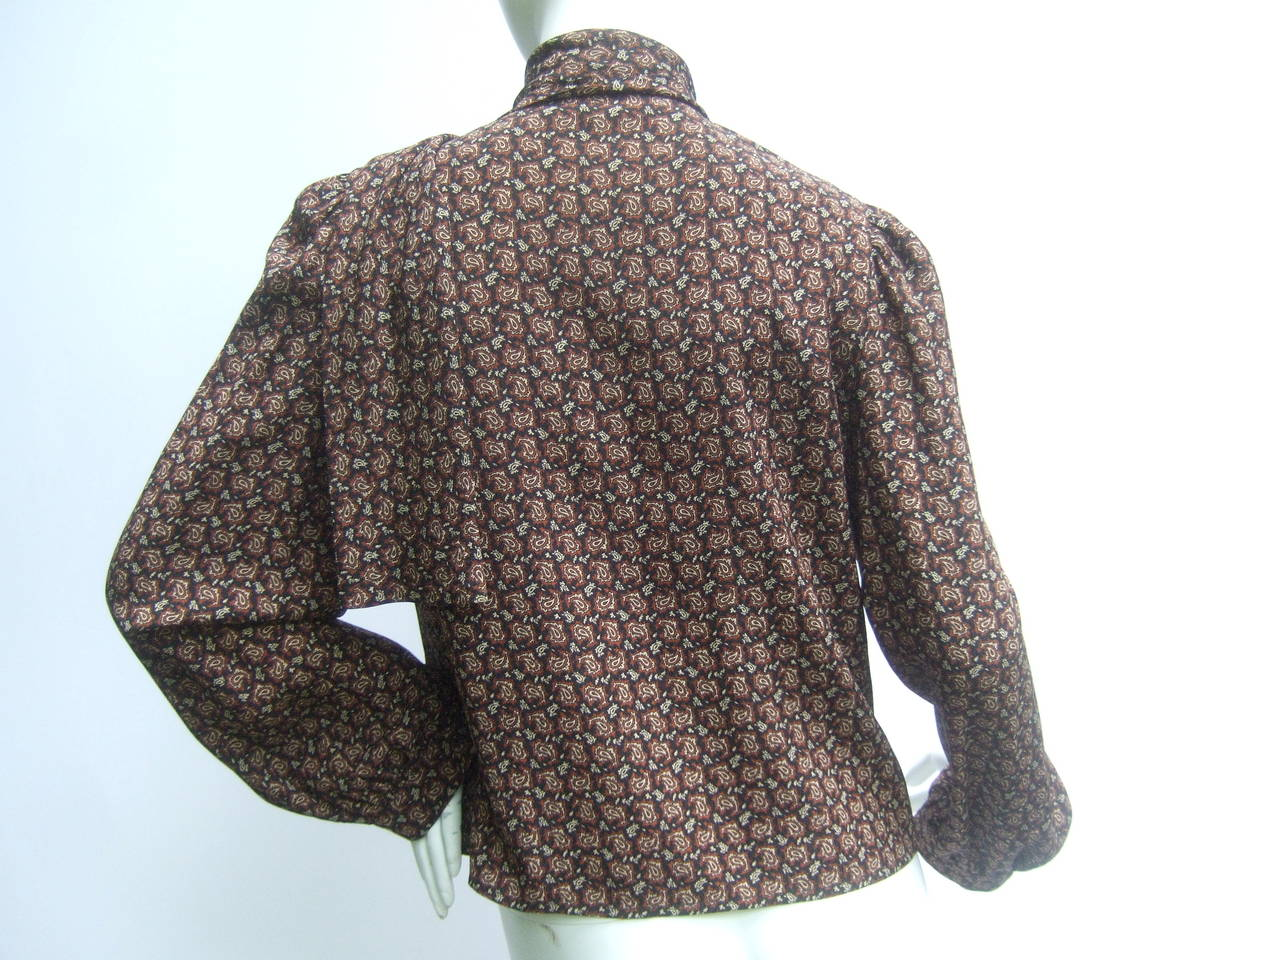 Lanvin Couture Paris Wool Jacket & Paisley Blouse Ensemble c 1980s 10